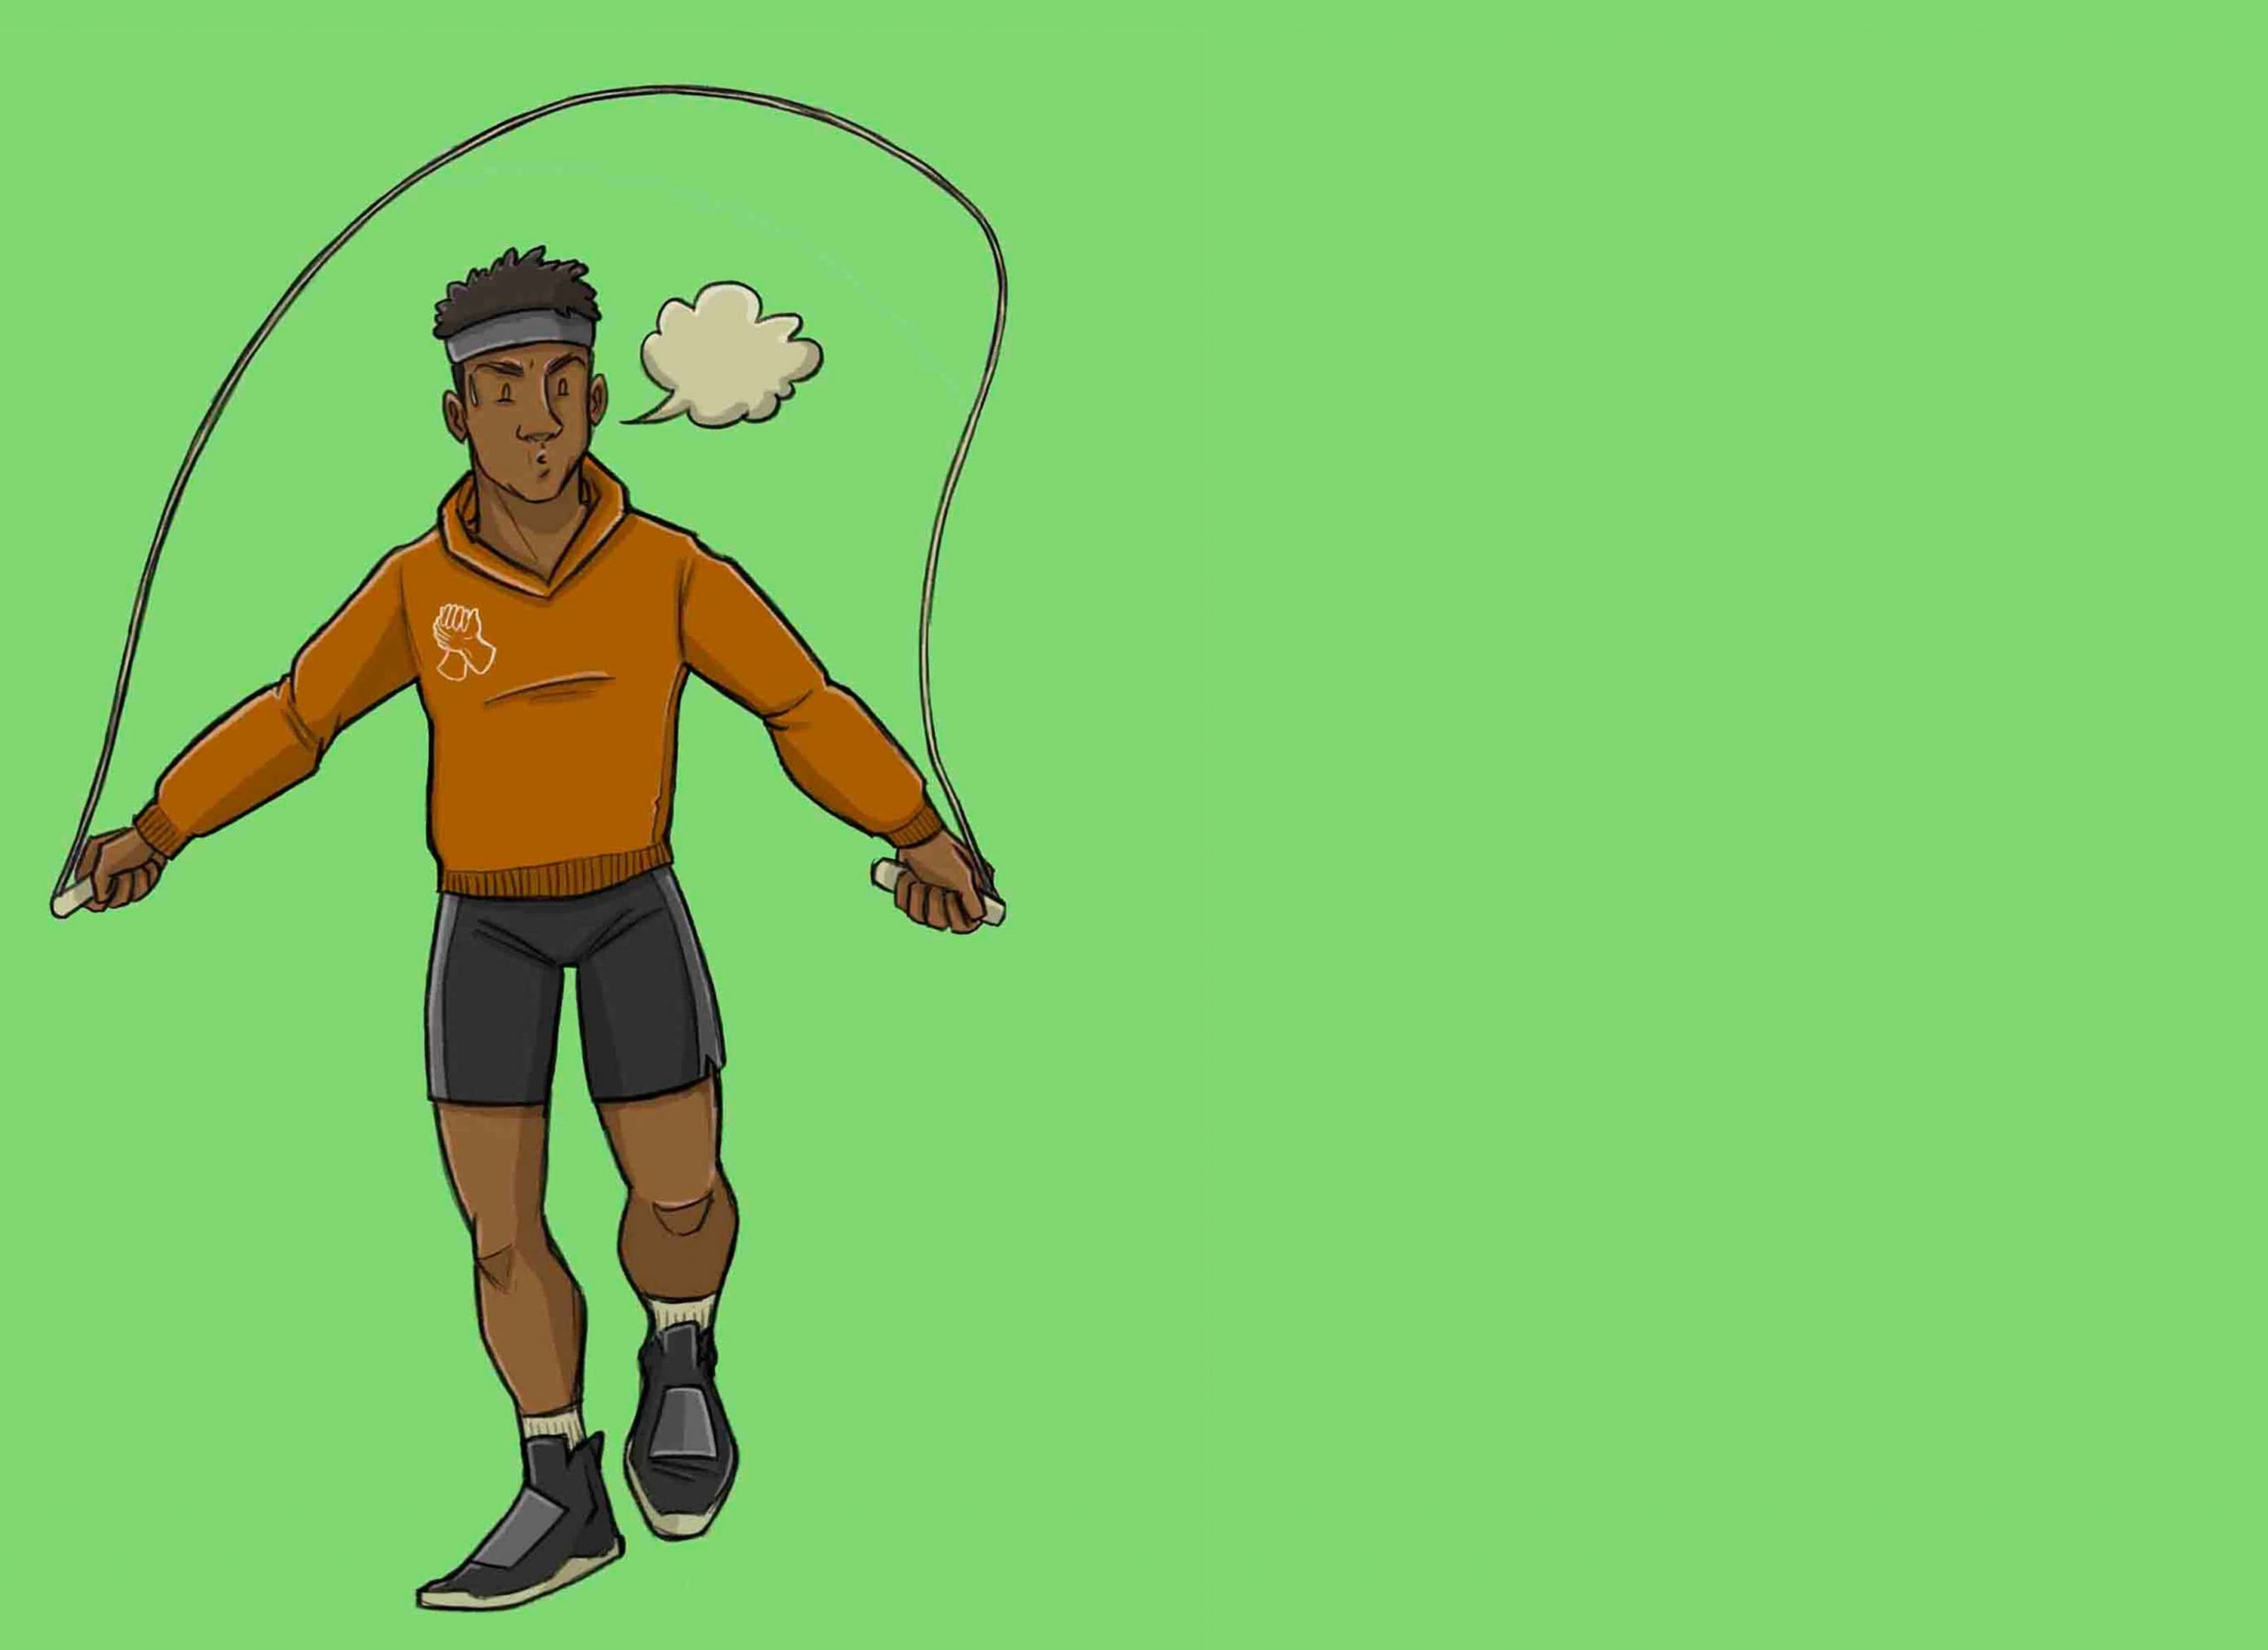 this is a drawing of a man skipping rope to get in shape